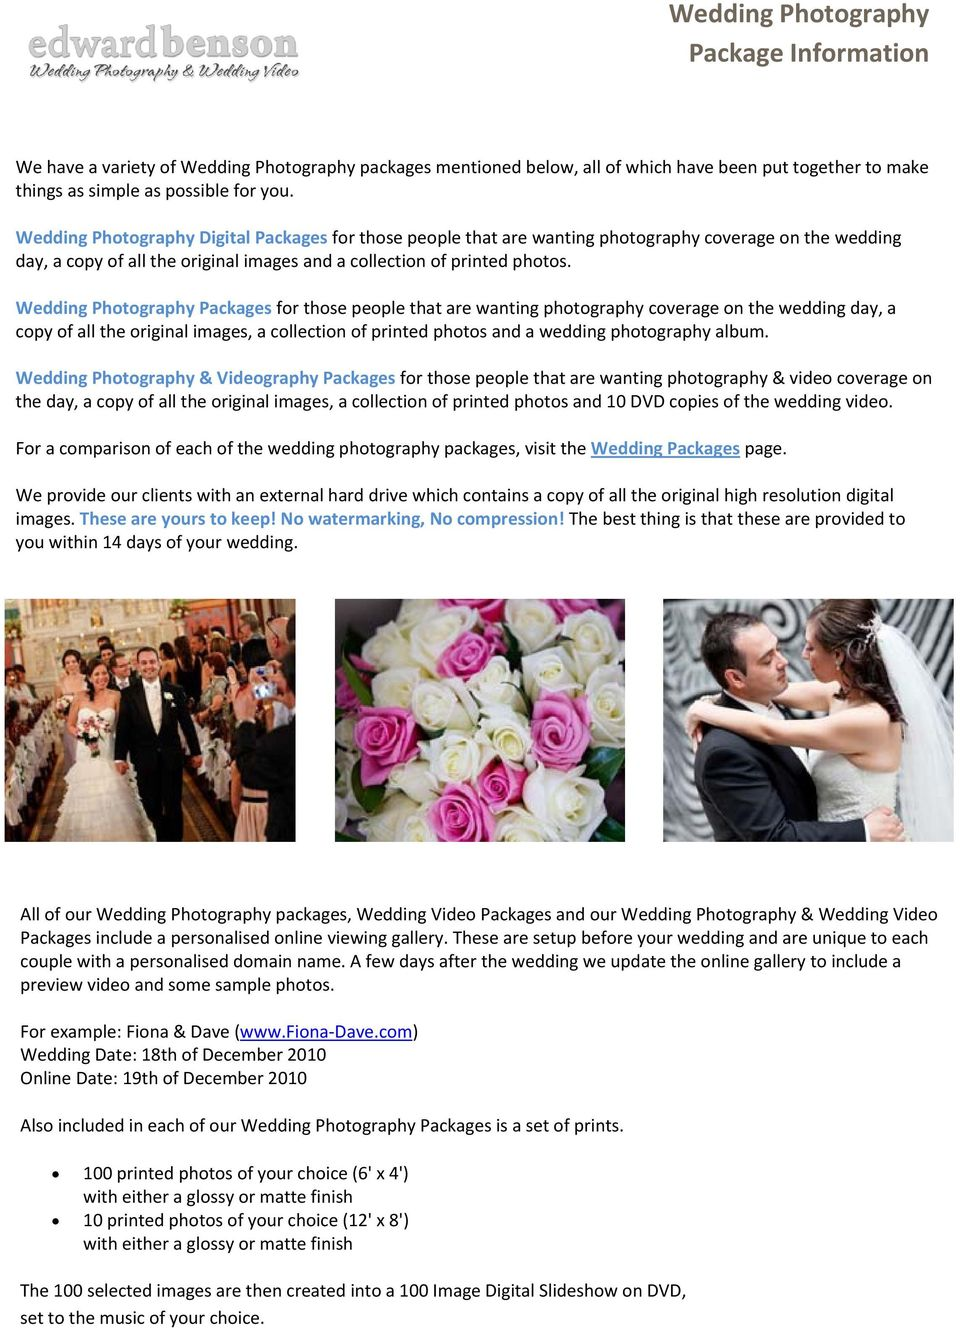 Packages for those people that are wanting photography coverage on the wedding day, a copy of all the original images, a collection of printed photos and a wedding photography album.